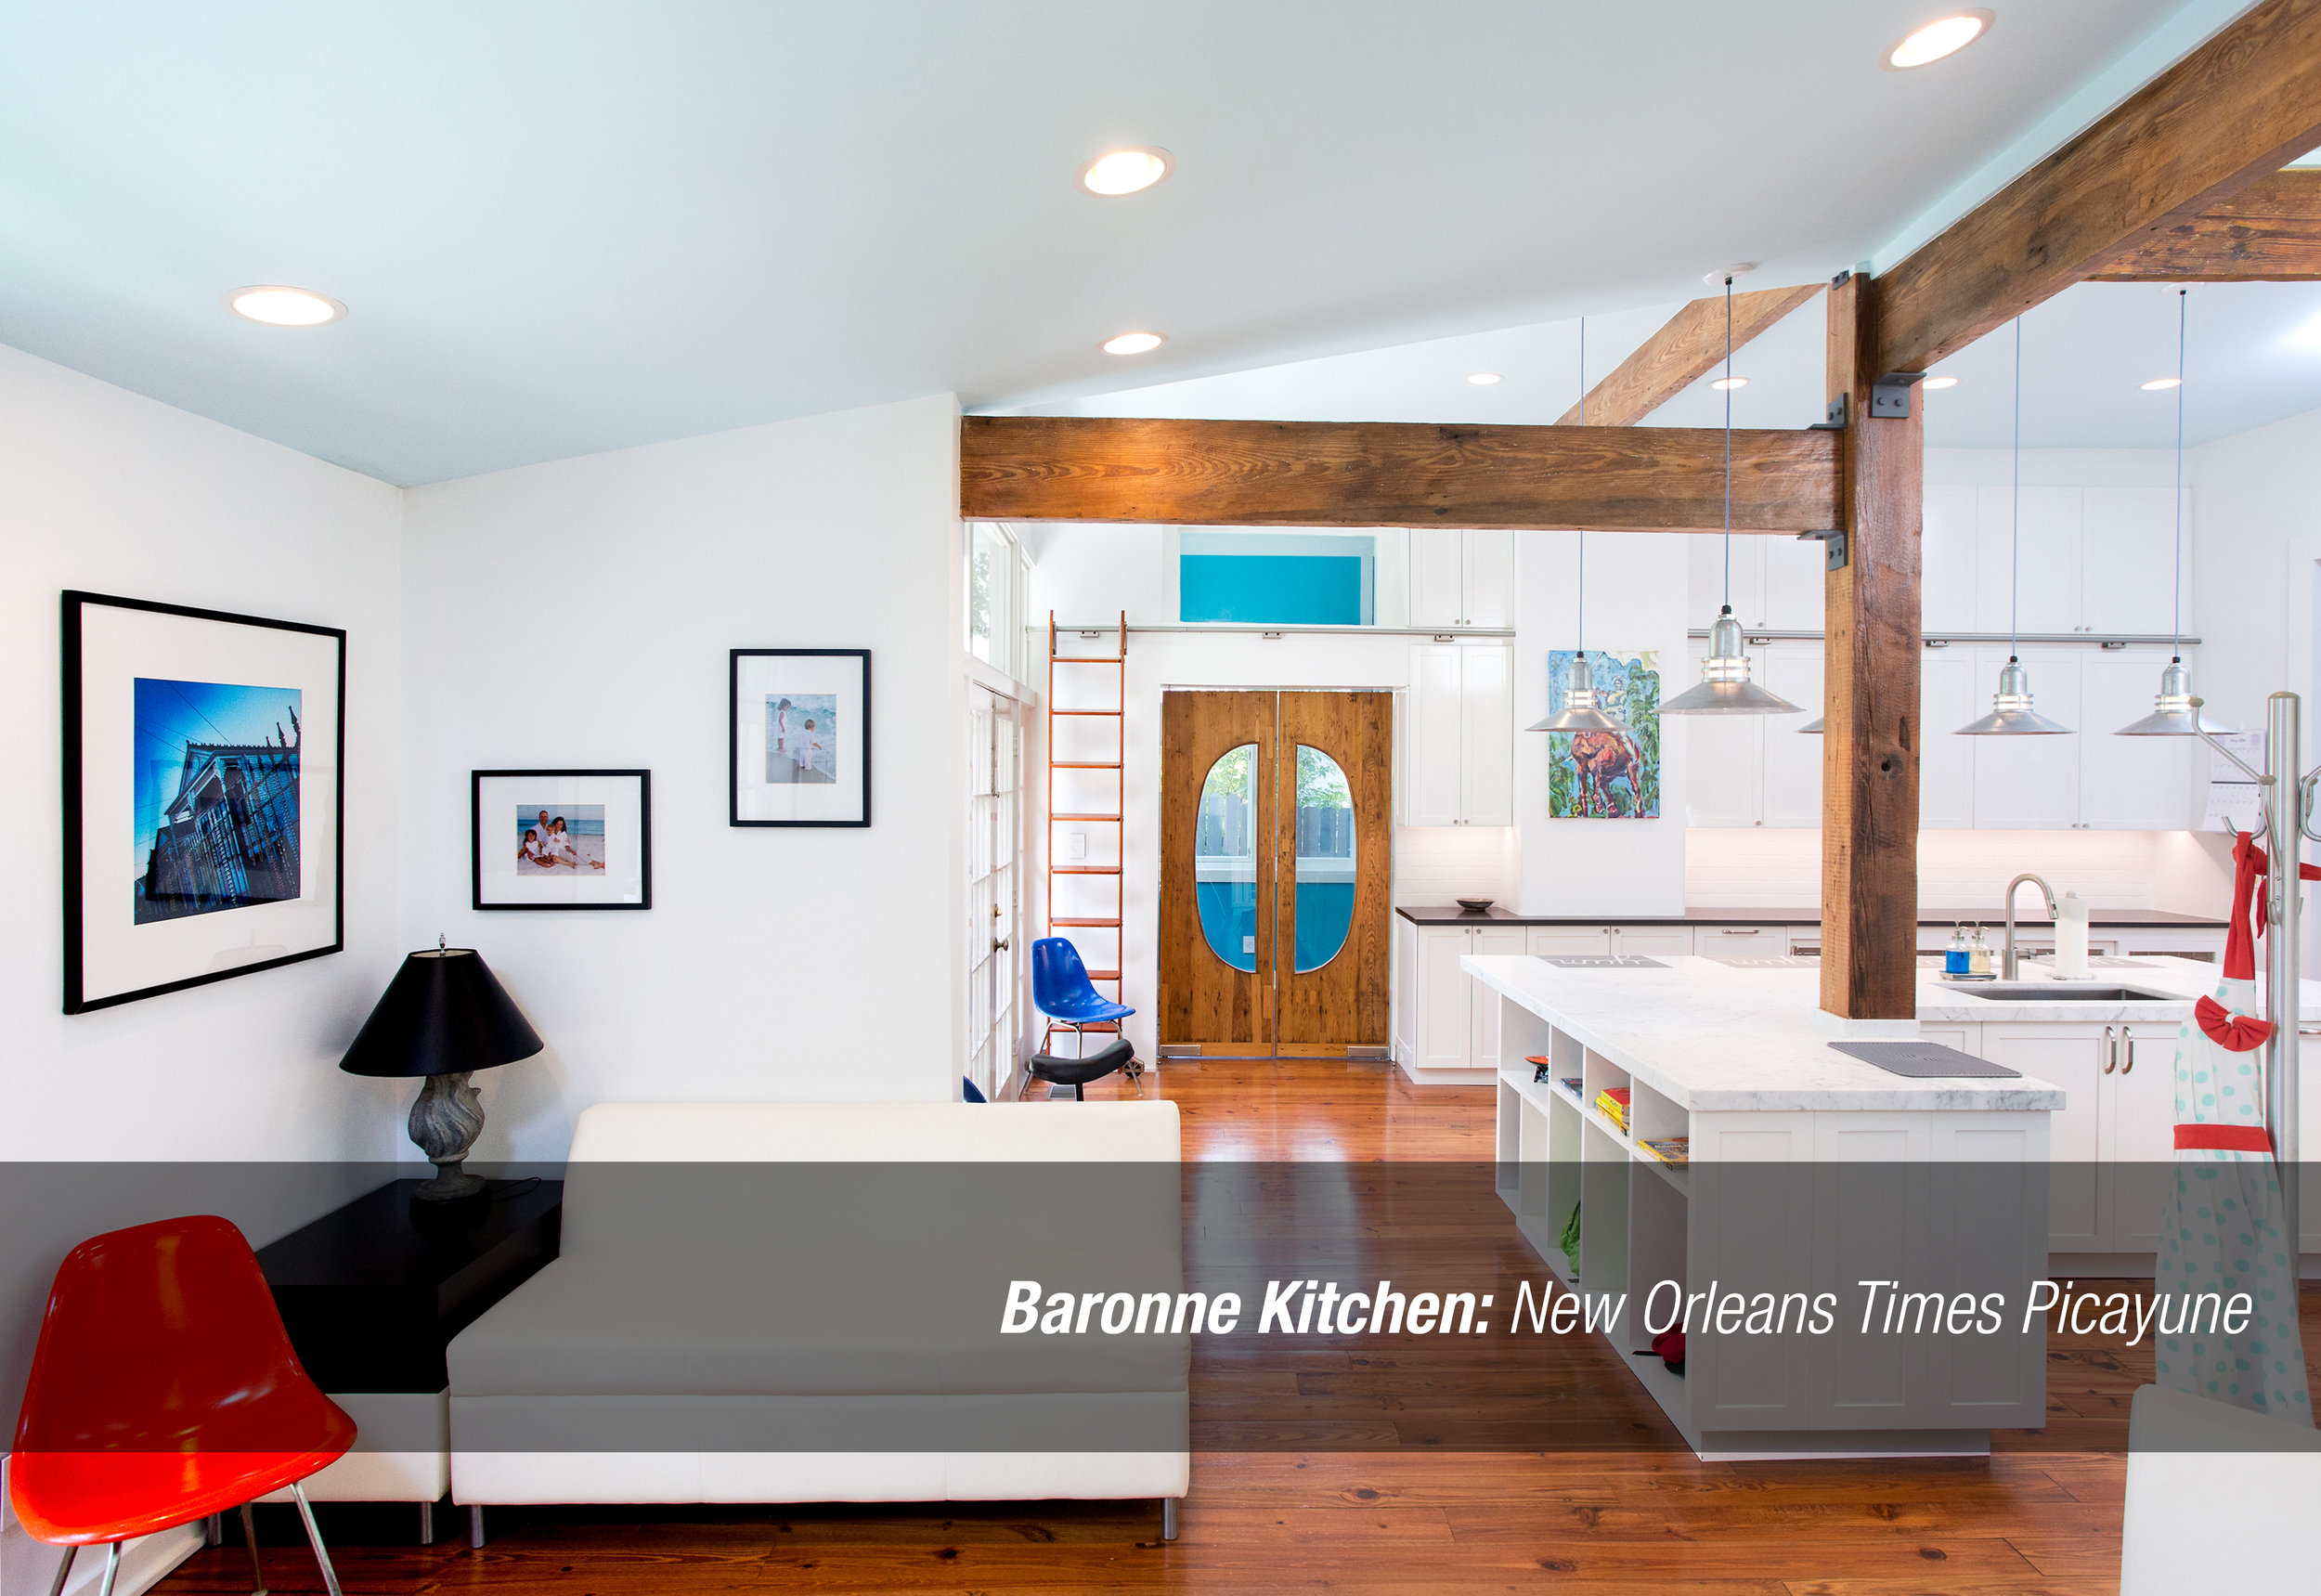 Baronne Kitchen